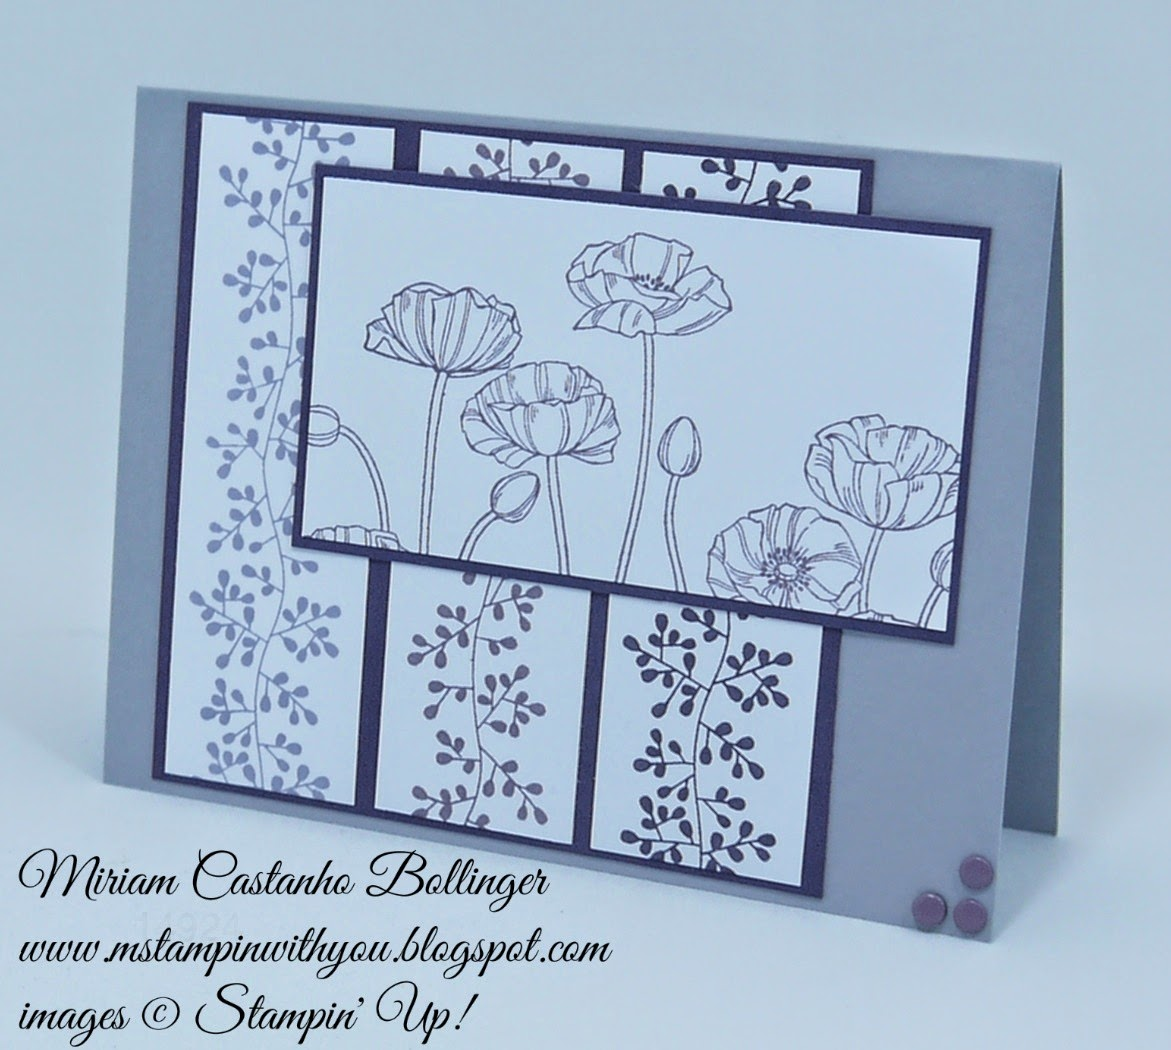 Miriam Castanho Bollinger, mstampinwithyou, stampin up, demonstrator, ppa, pleasant poppies, bordering blooms, su